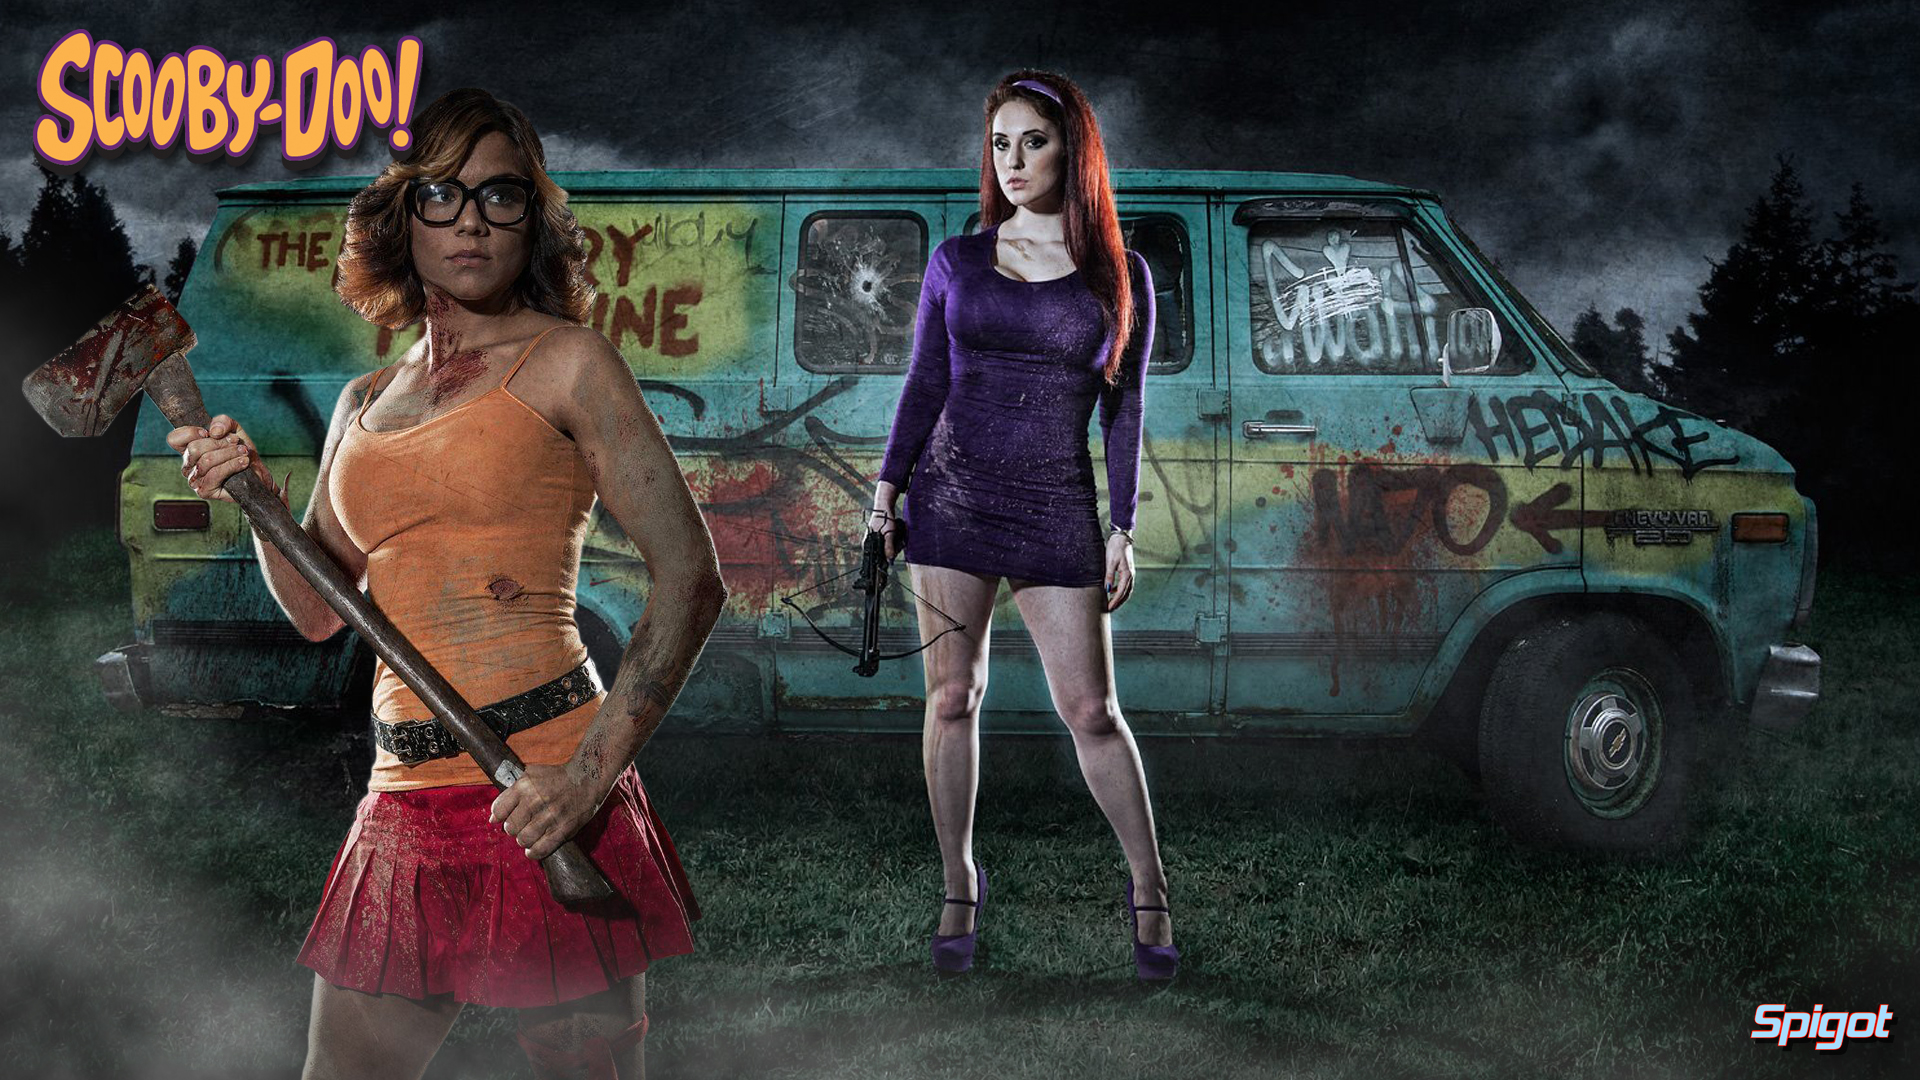 Scooby doo vs the zombie apocalypse george spigot 39 s blog - Parijs zoet ...